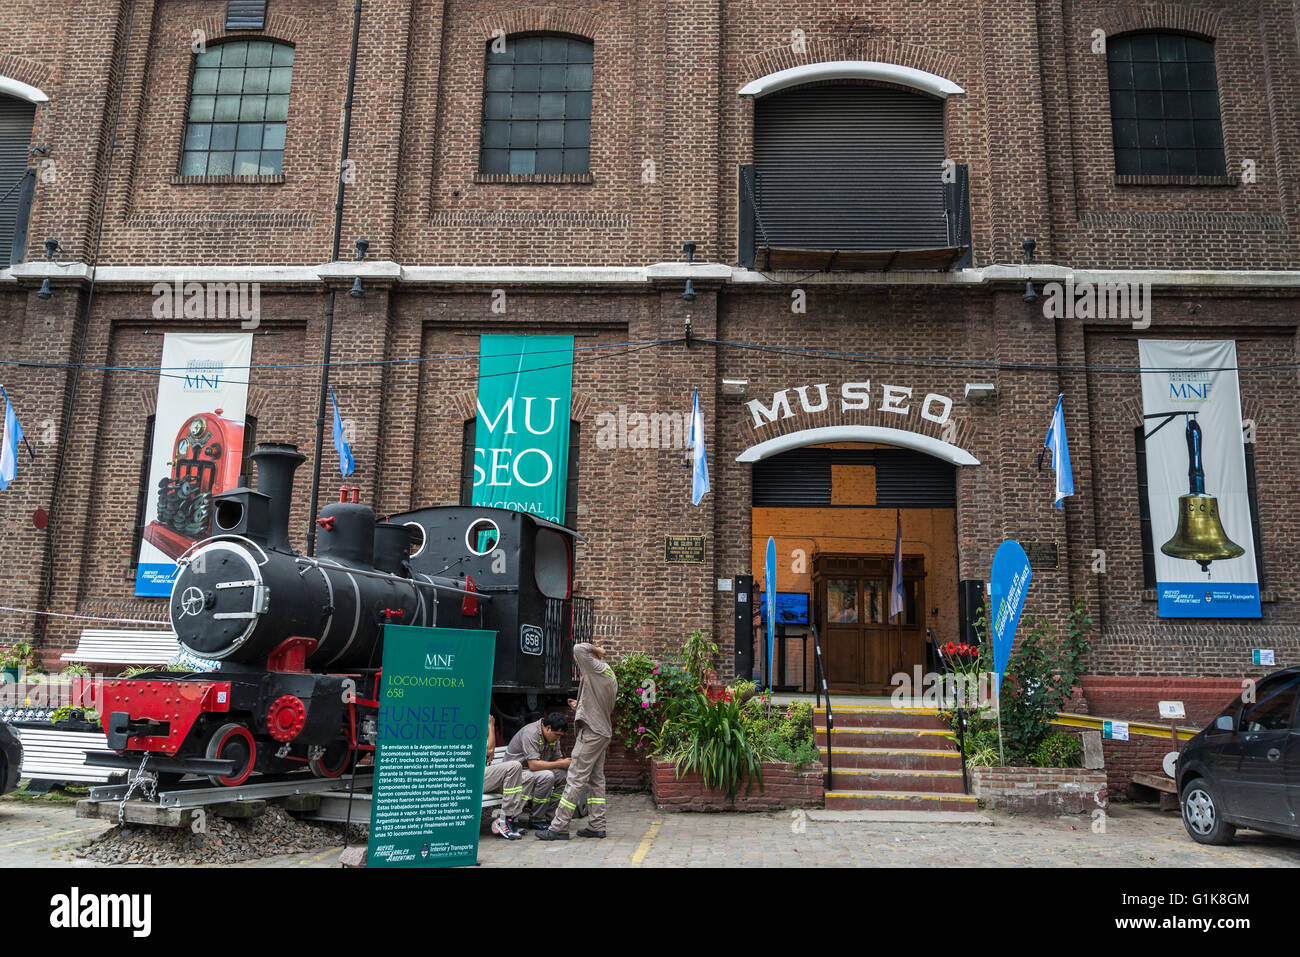 National Railway Museum, Buenos Aires, Argentina - Stock Image